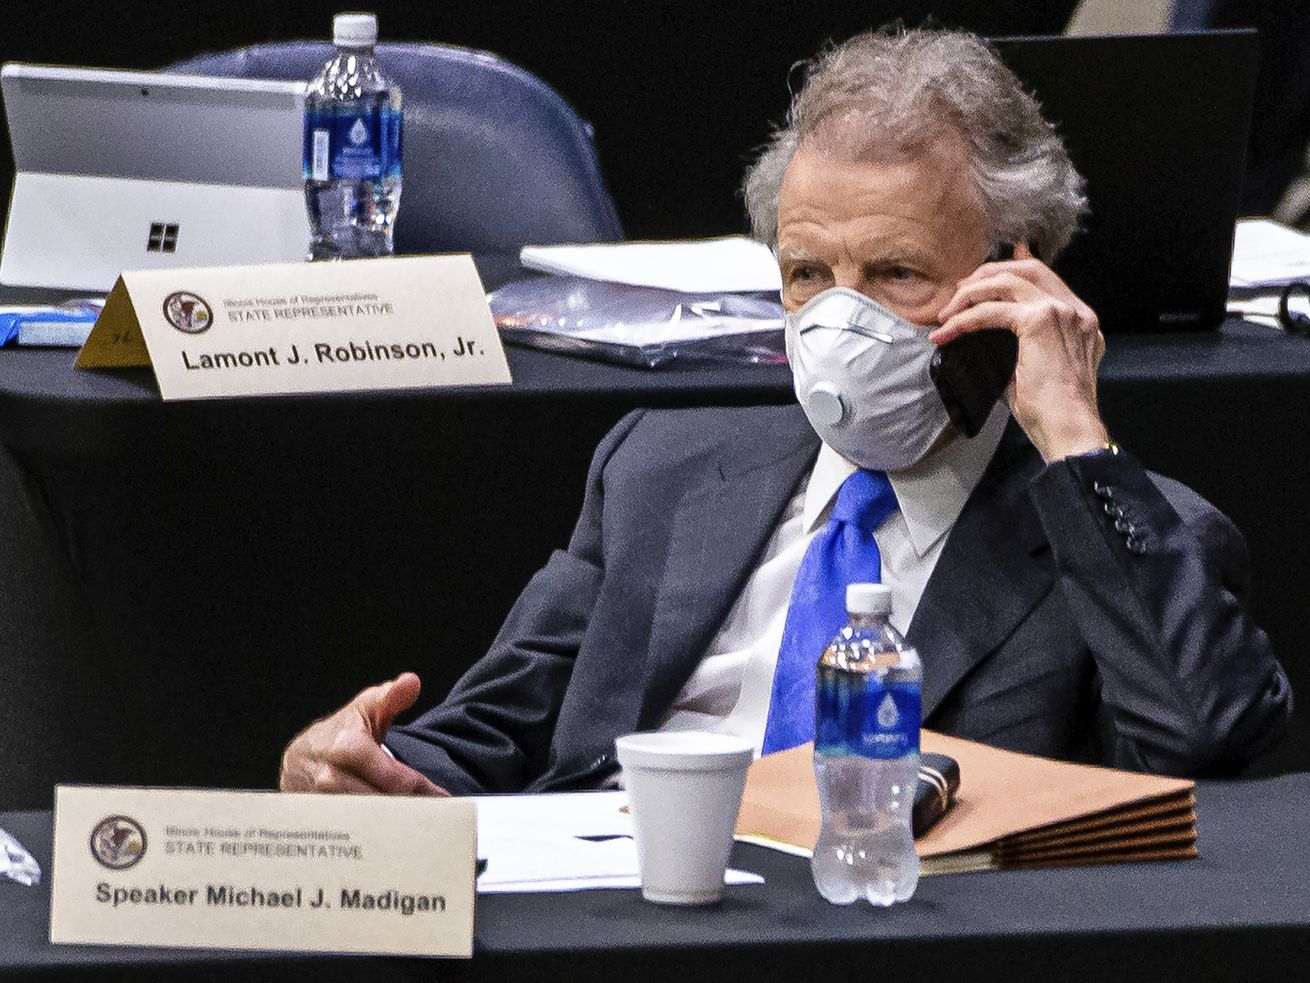 Michael Madigan's future is on the brink even without him being charged